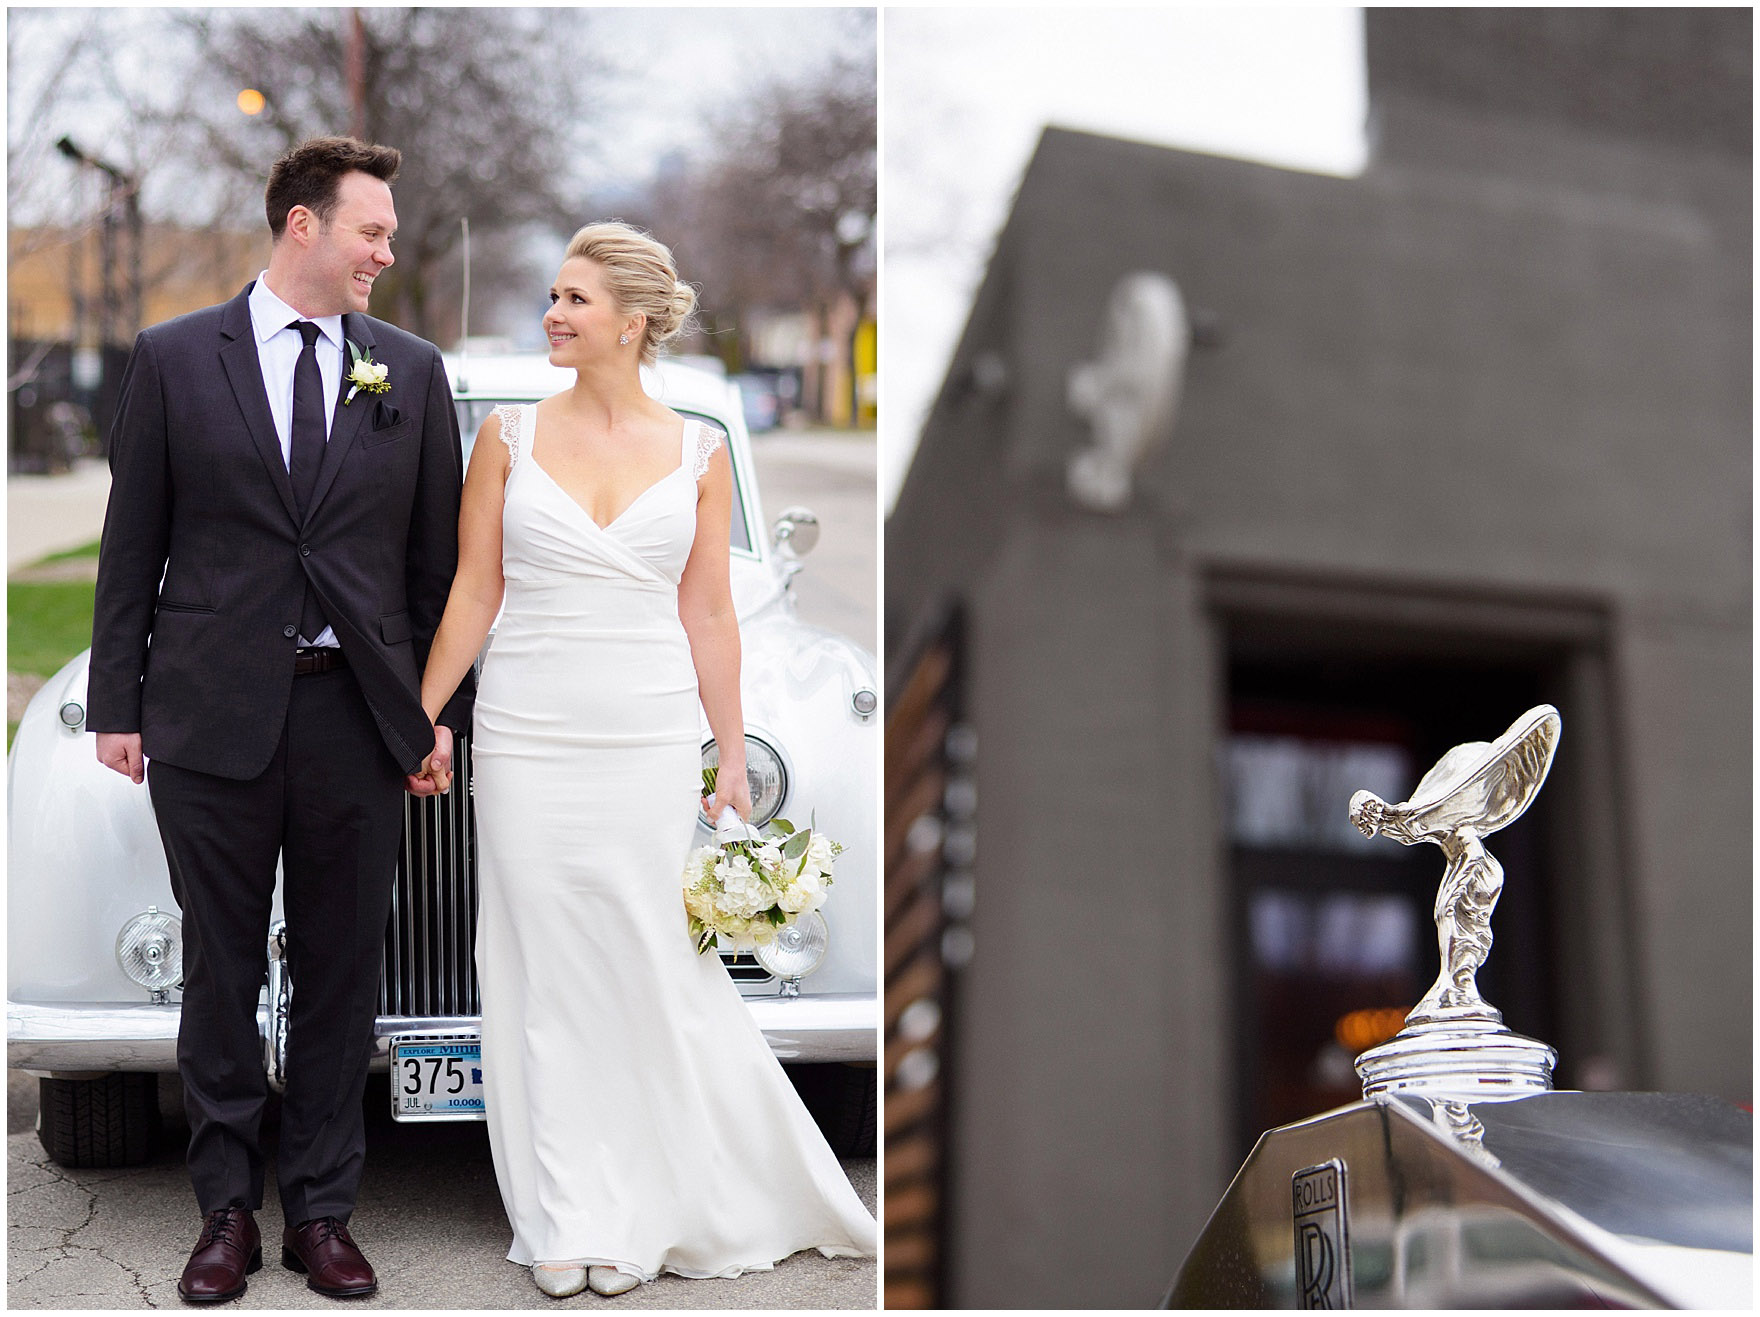 A bride and groom pose with a vintage Rolls Royce before an Ovation Chicago wedding.